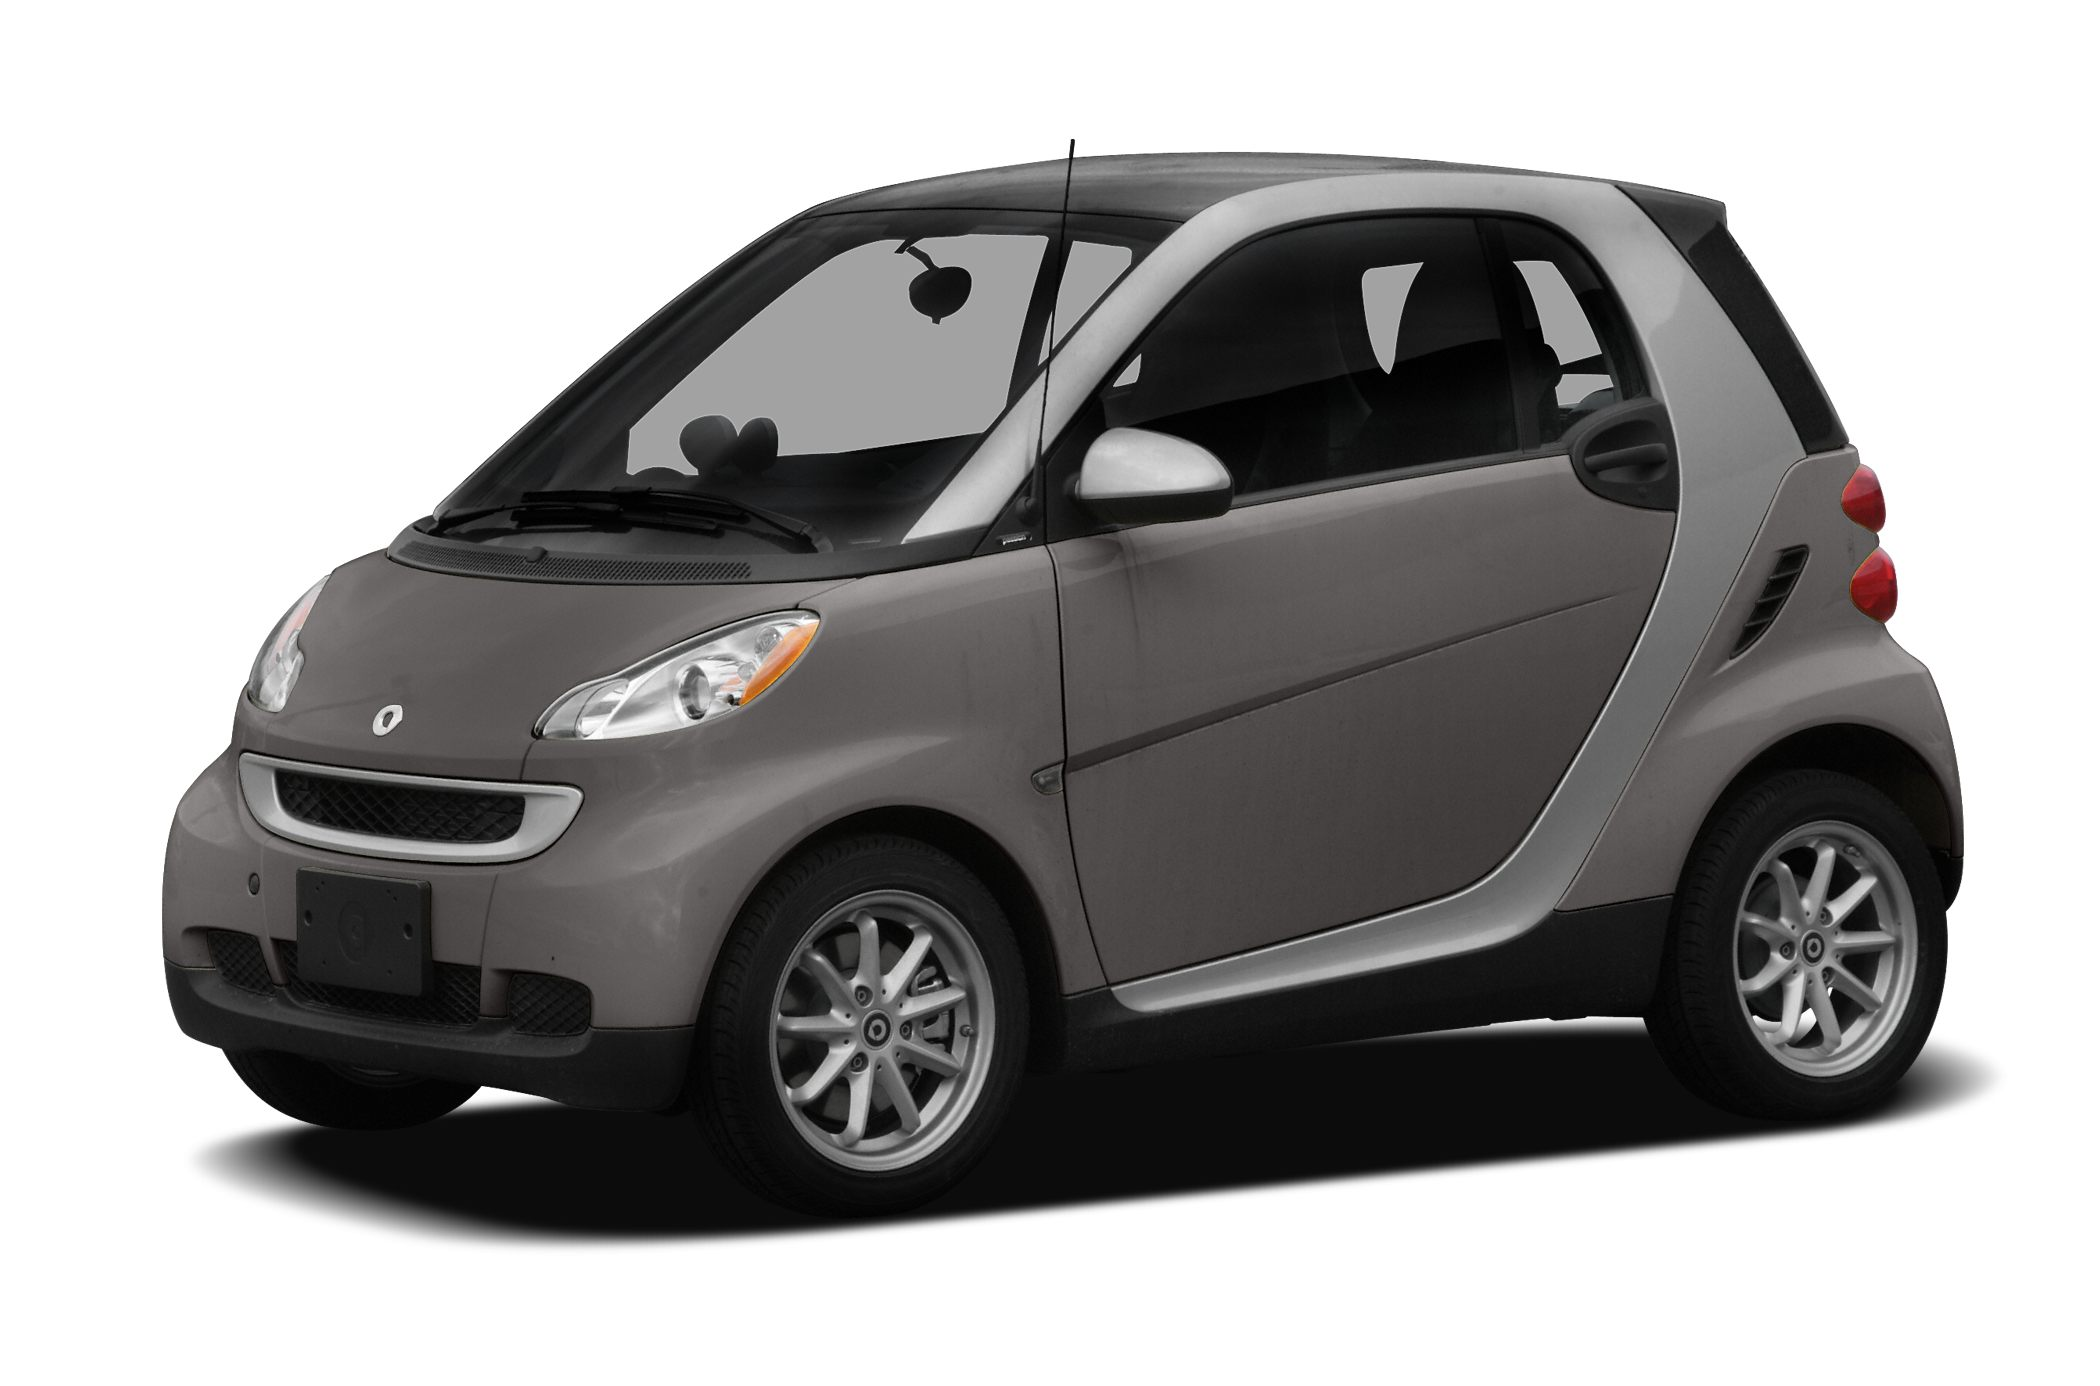 2010 Smart Fortwo Information